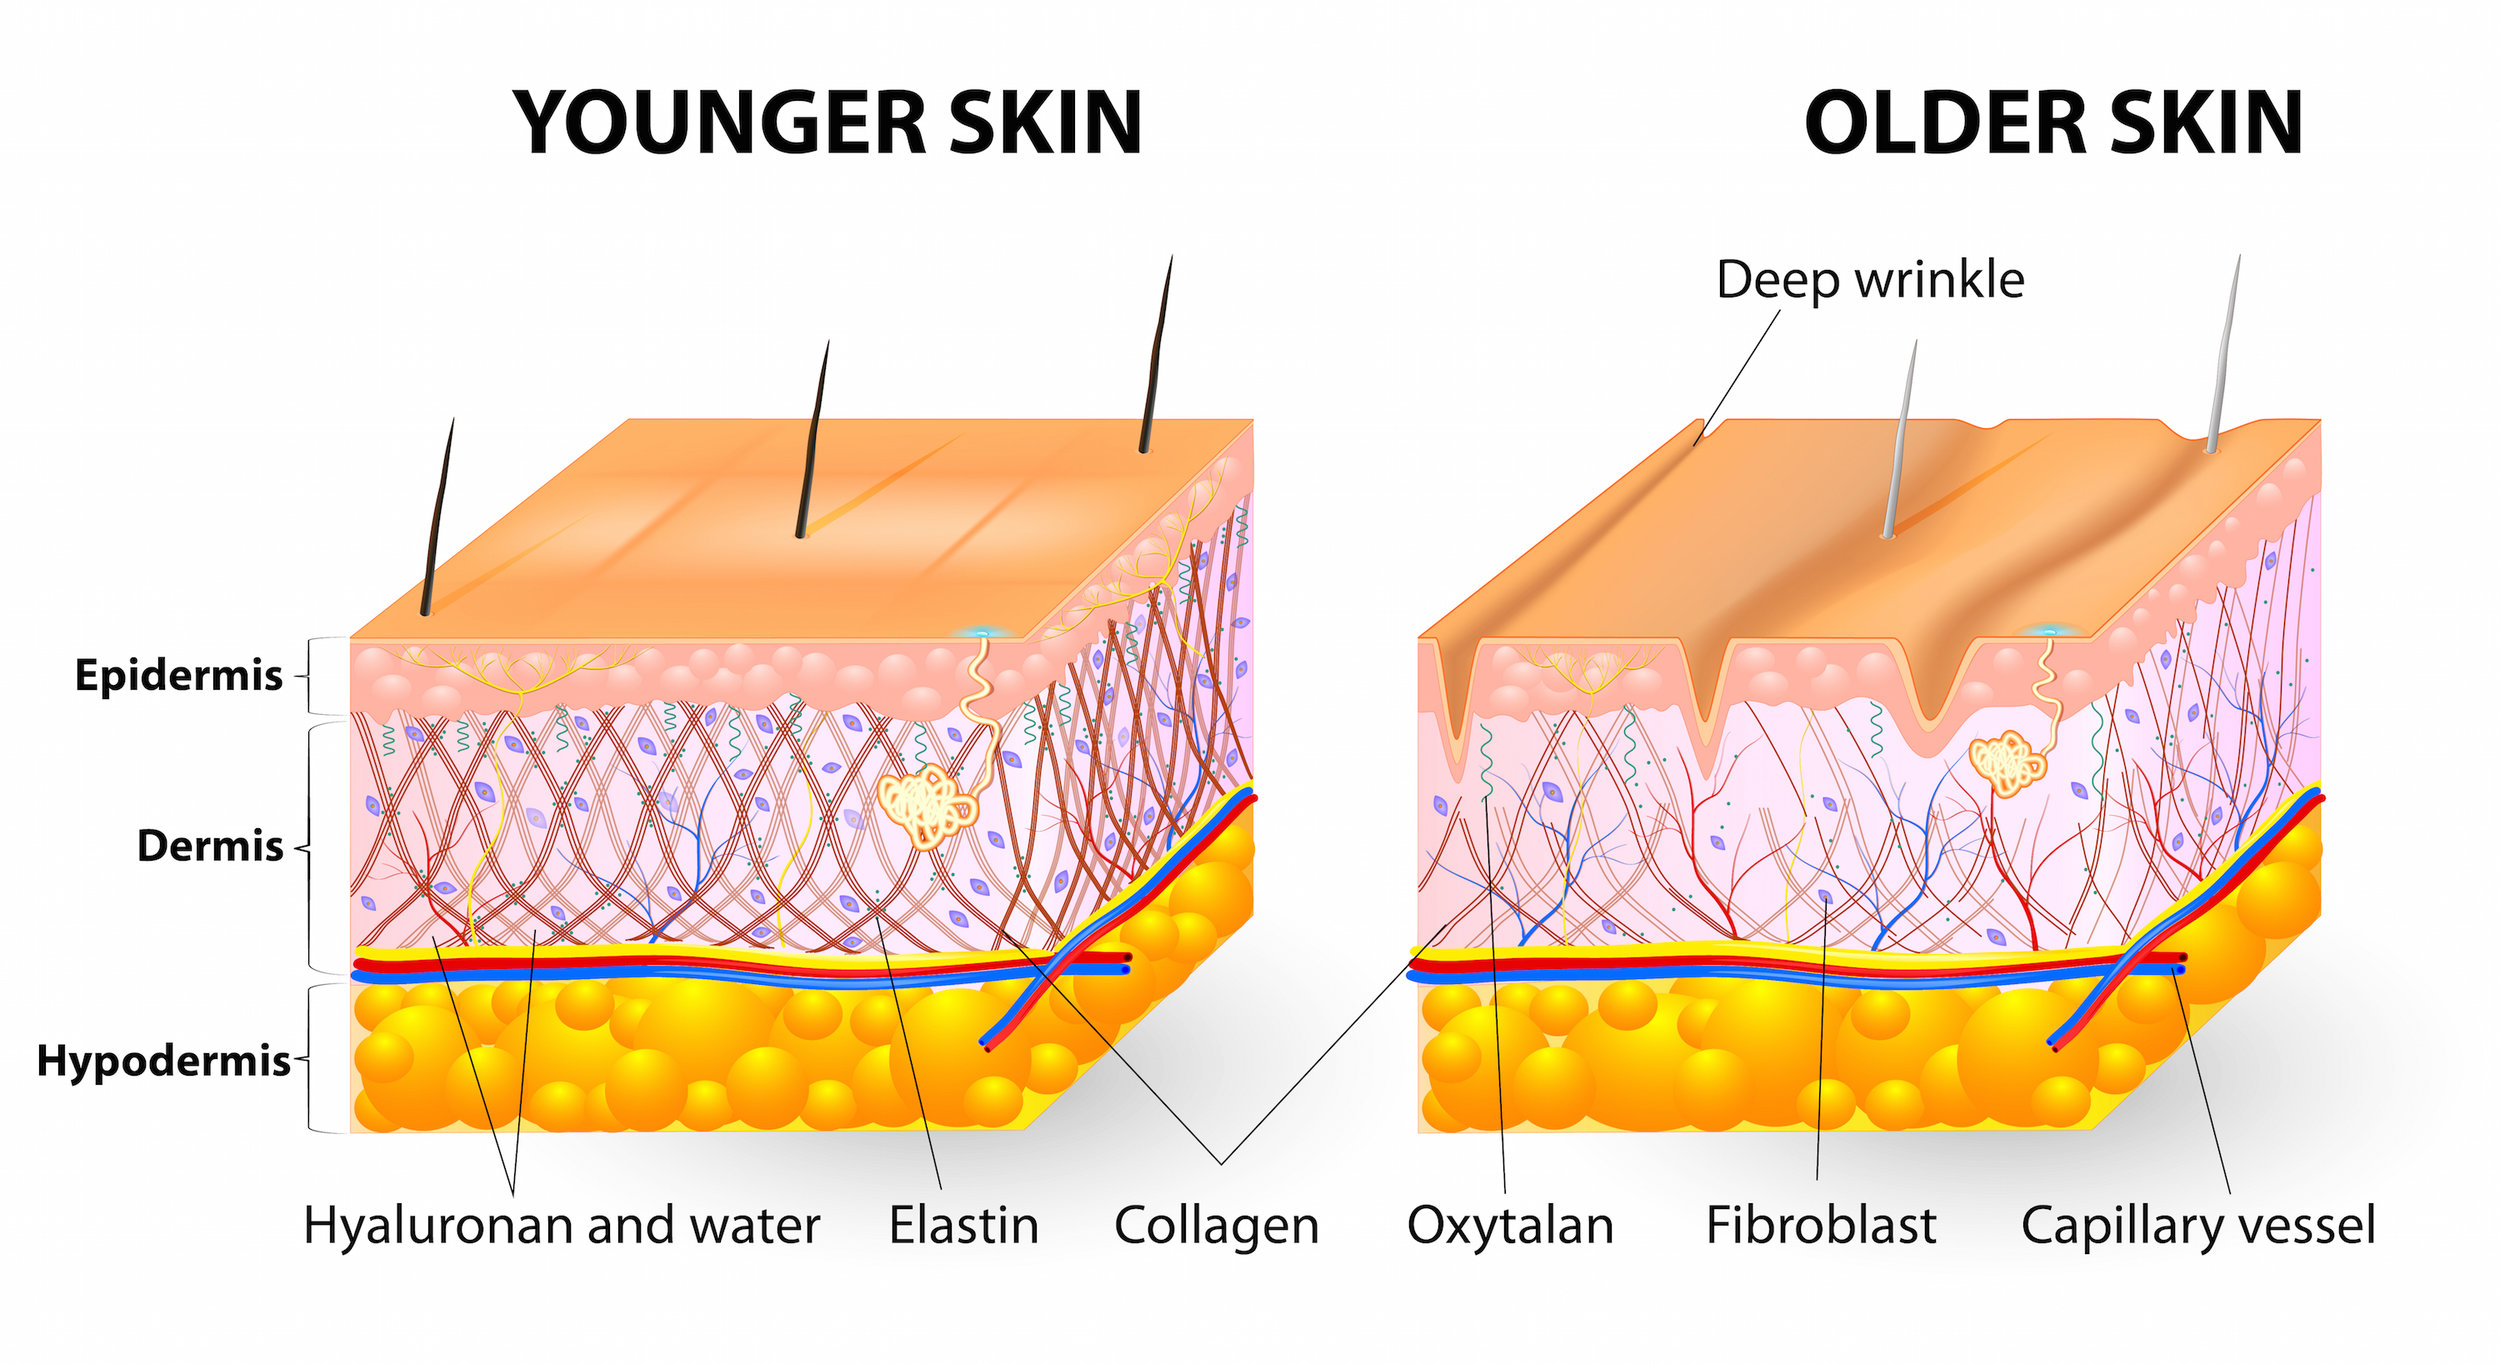 UV rays deeply penetrate our skin, reaching all the way down to the Hypodermis.